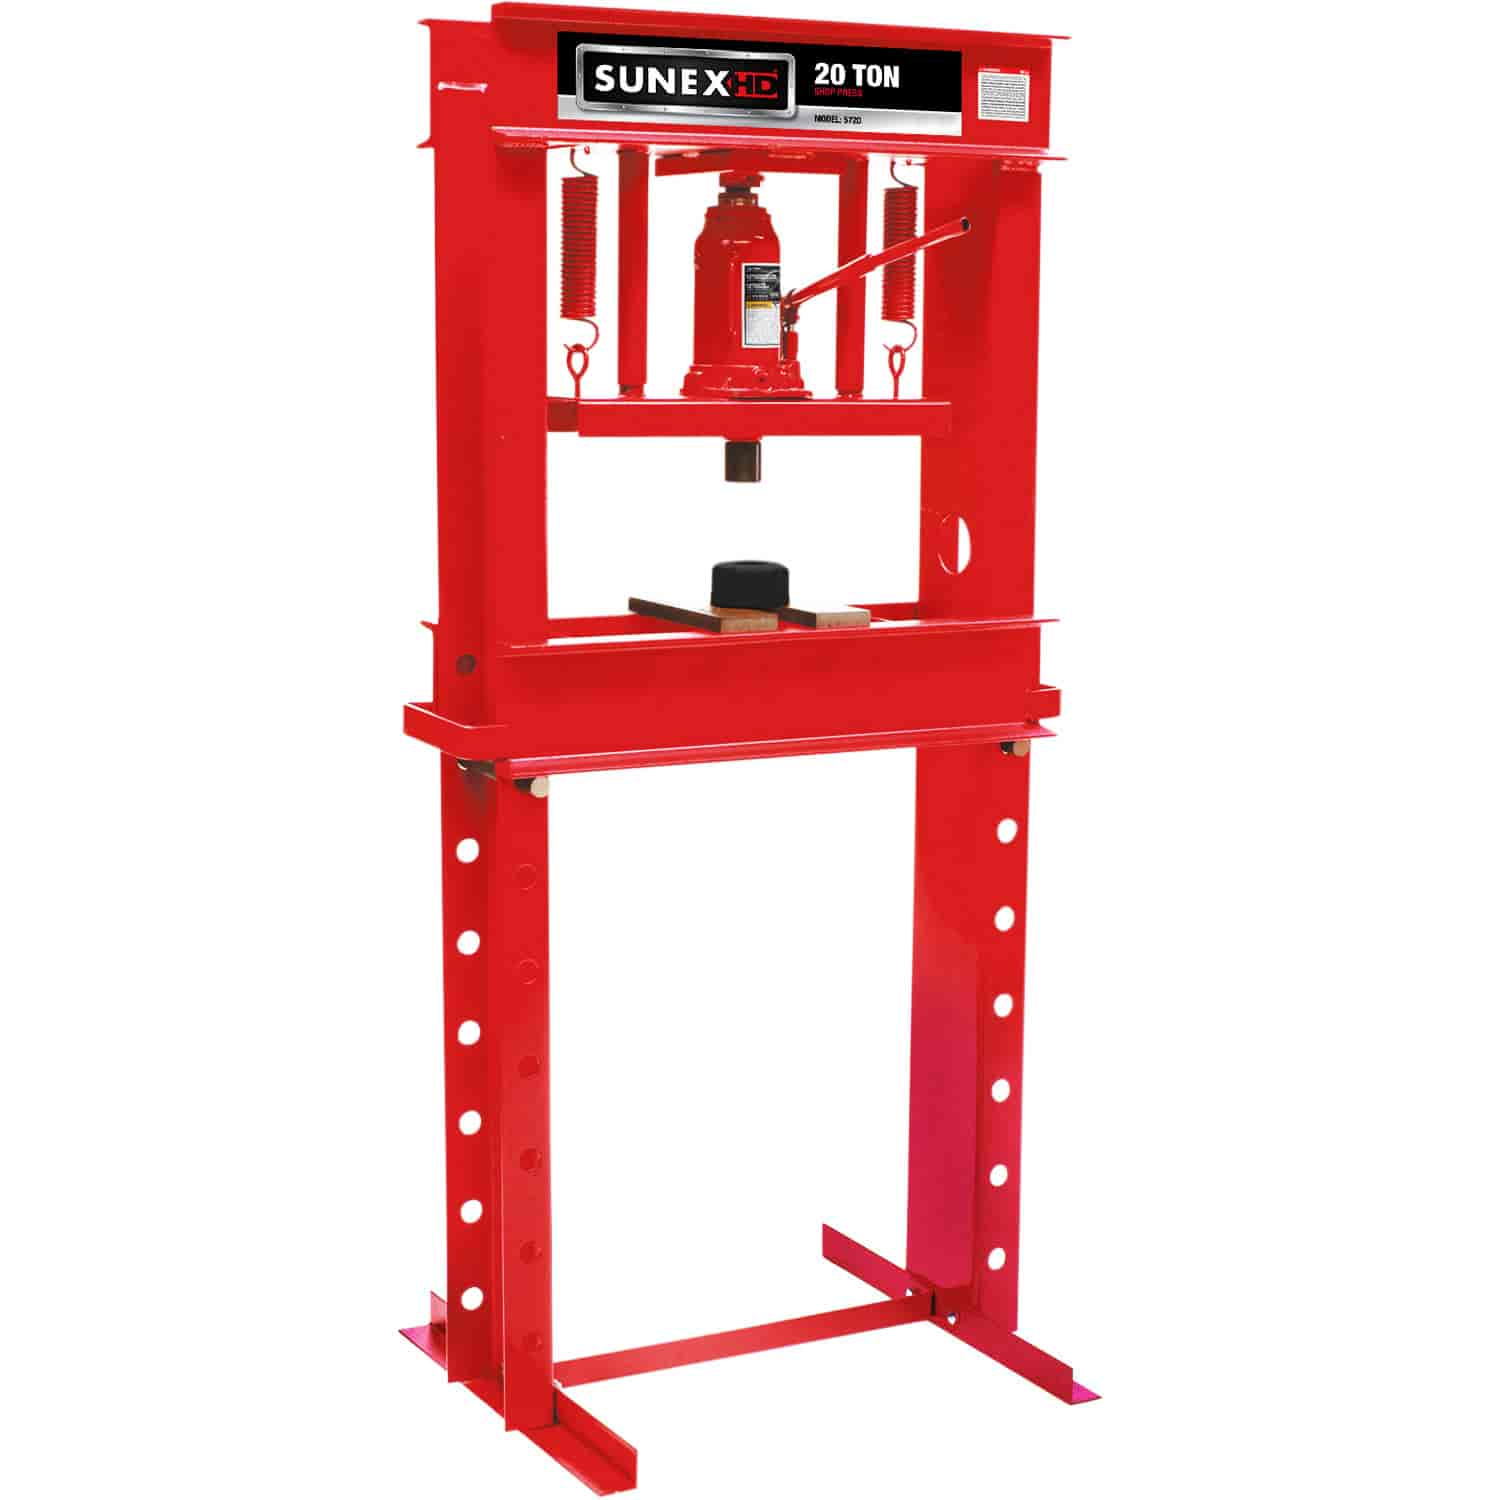 sunex 5720 20 ton hydraulic shop press made in the usa jegs. Black Bedroom Furniture Sets. Home Design Ideas